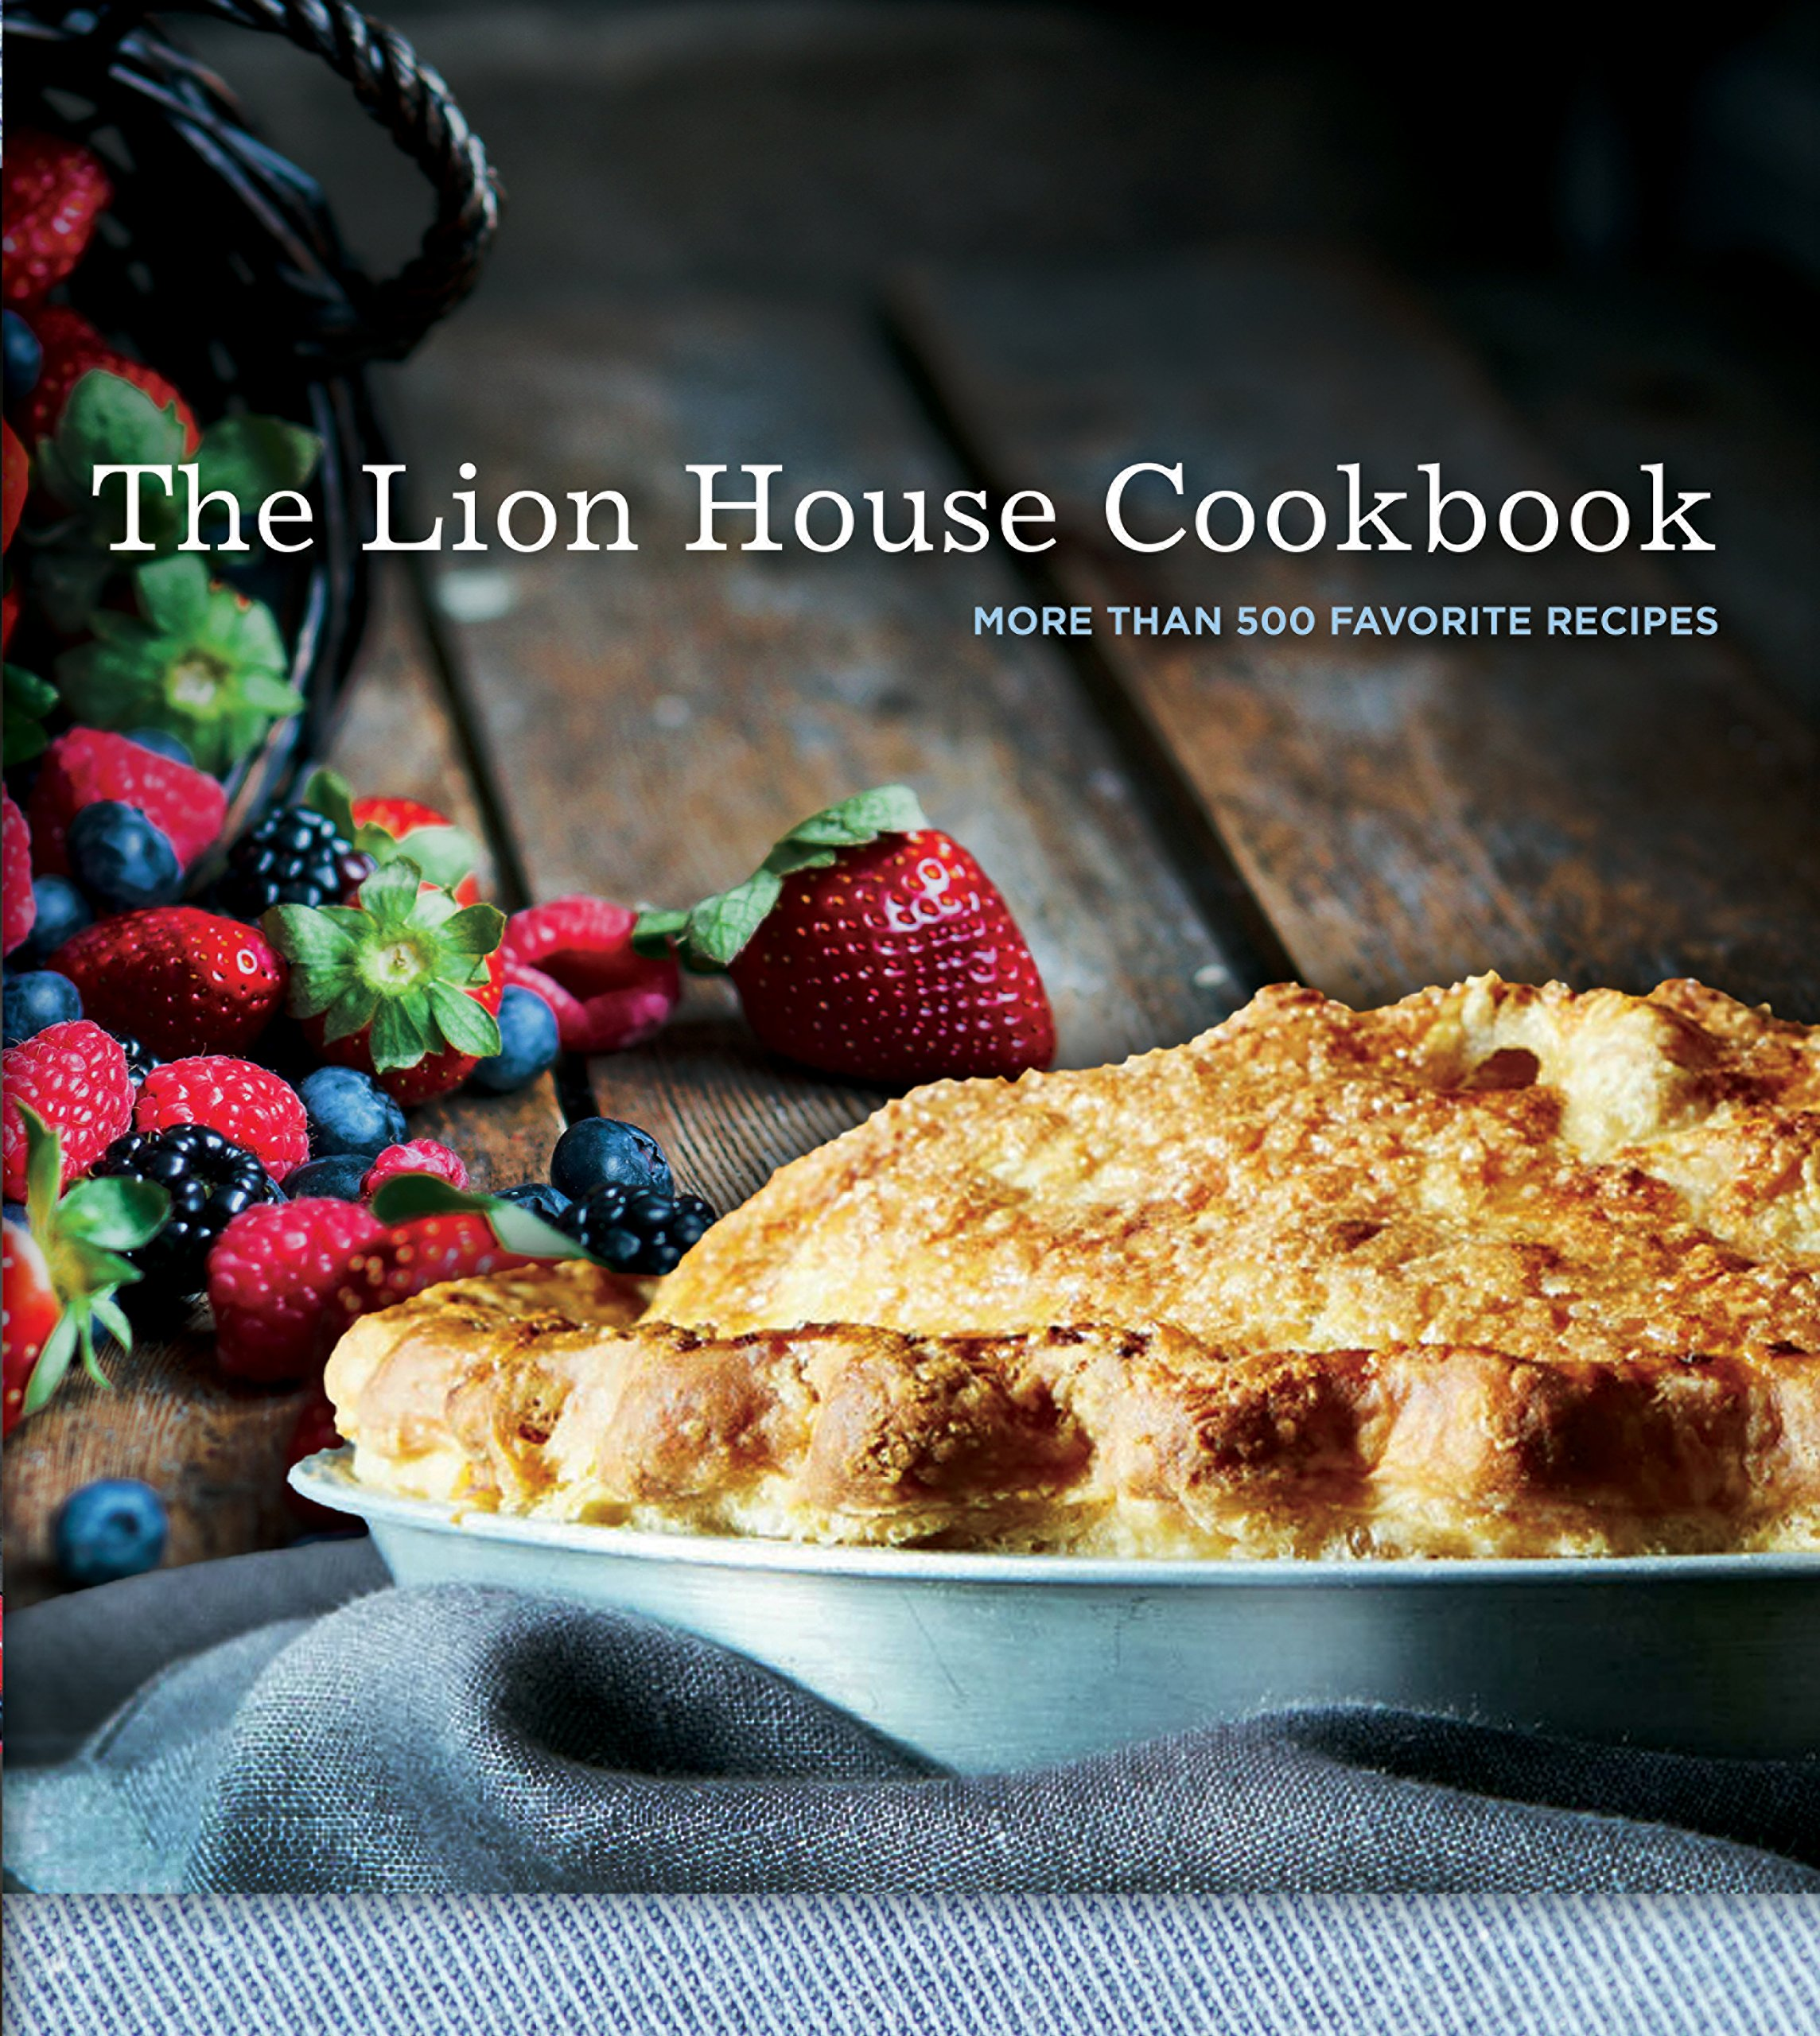 The lion house cookbook more than 500 favorite recipes temple the lion house cookbook more than 500 favorite recipes temple square hospitality 9781629721736 amazon books forumfinder Gallery